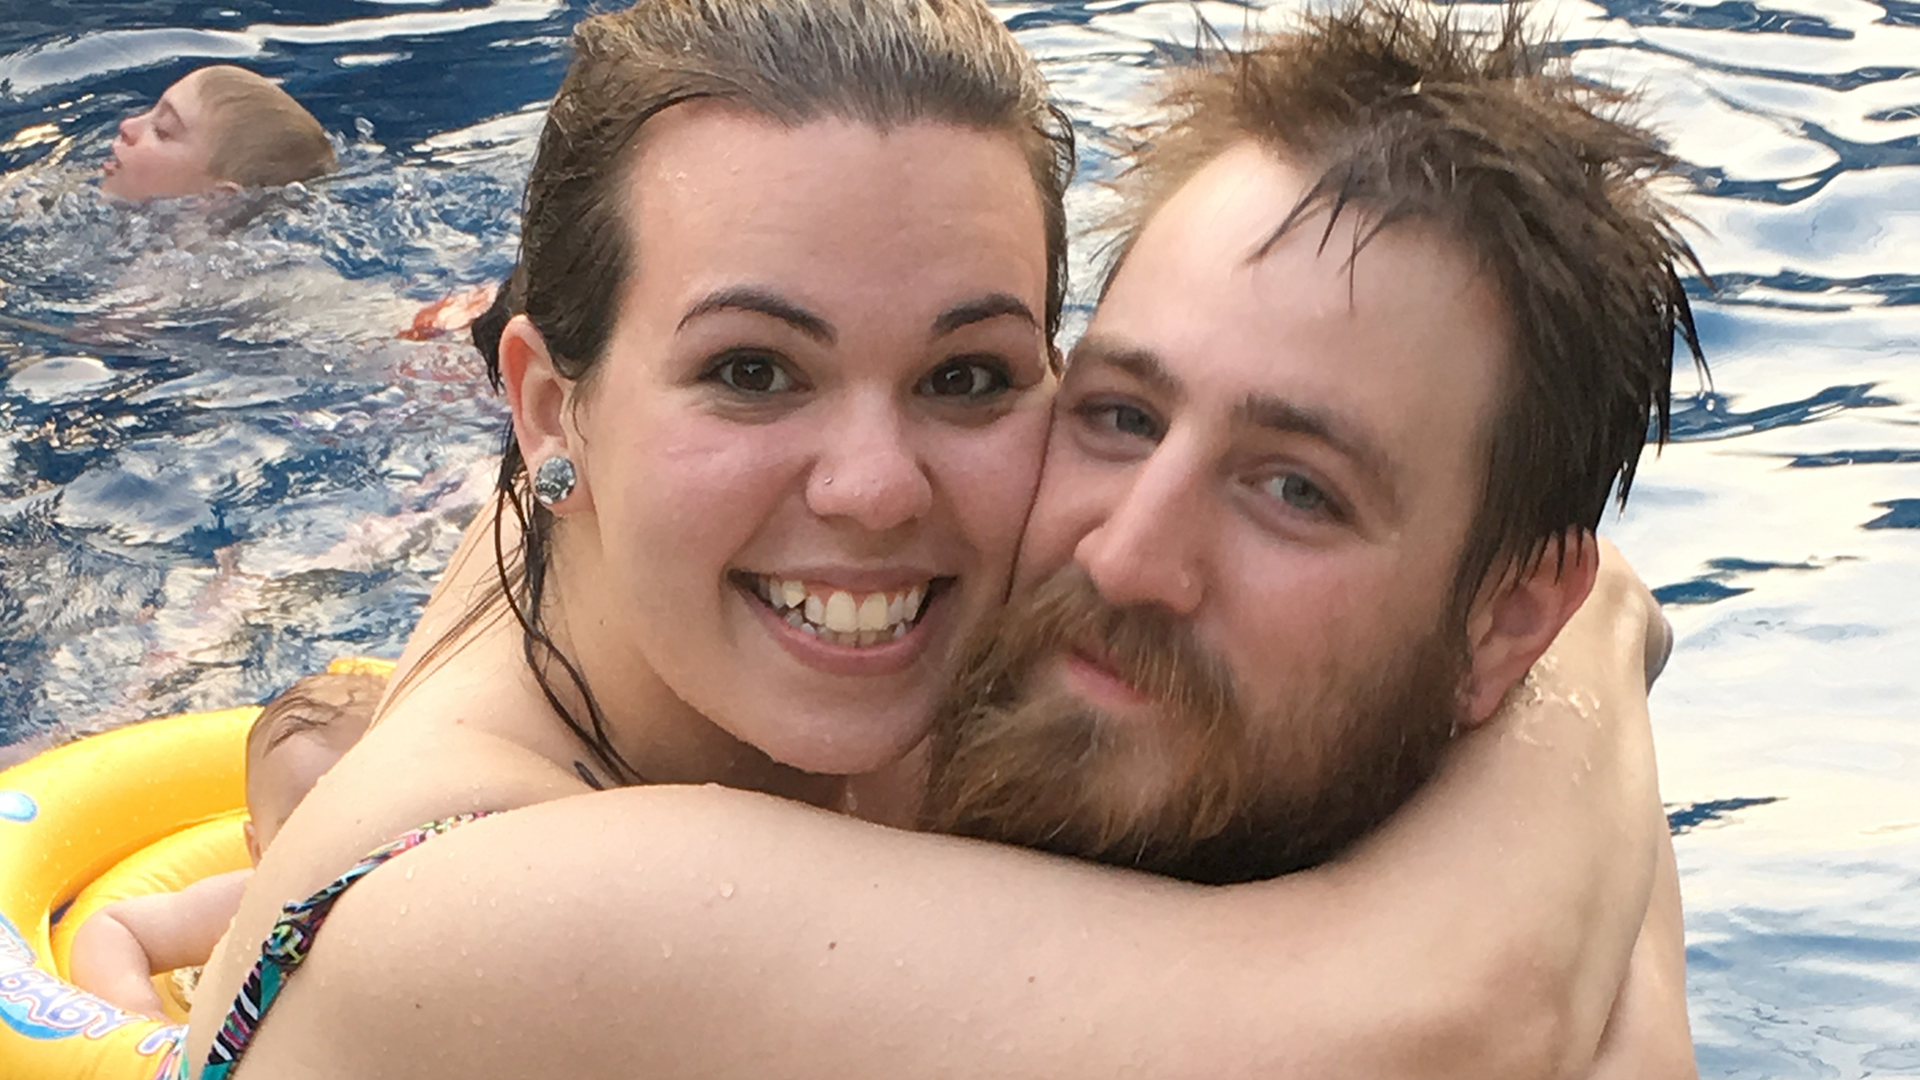 Couple Snaps Happy Photo, Then People Notice Sagging Skin On Her Belly — But She Doesn't Care